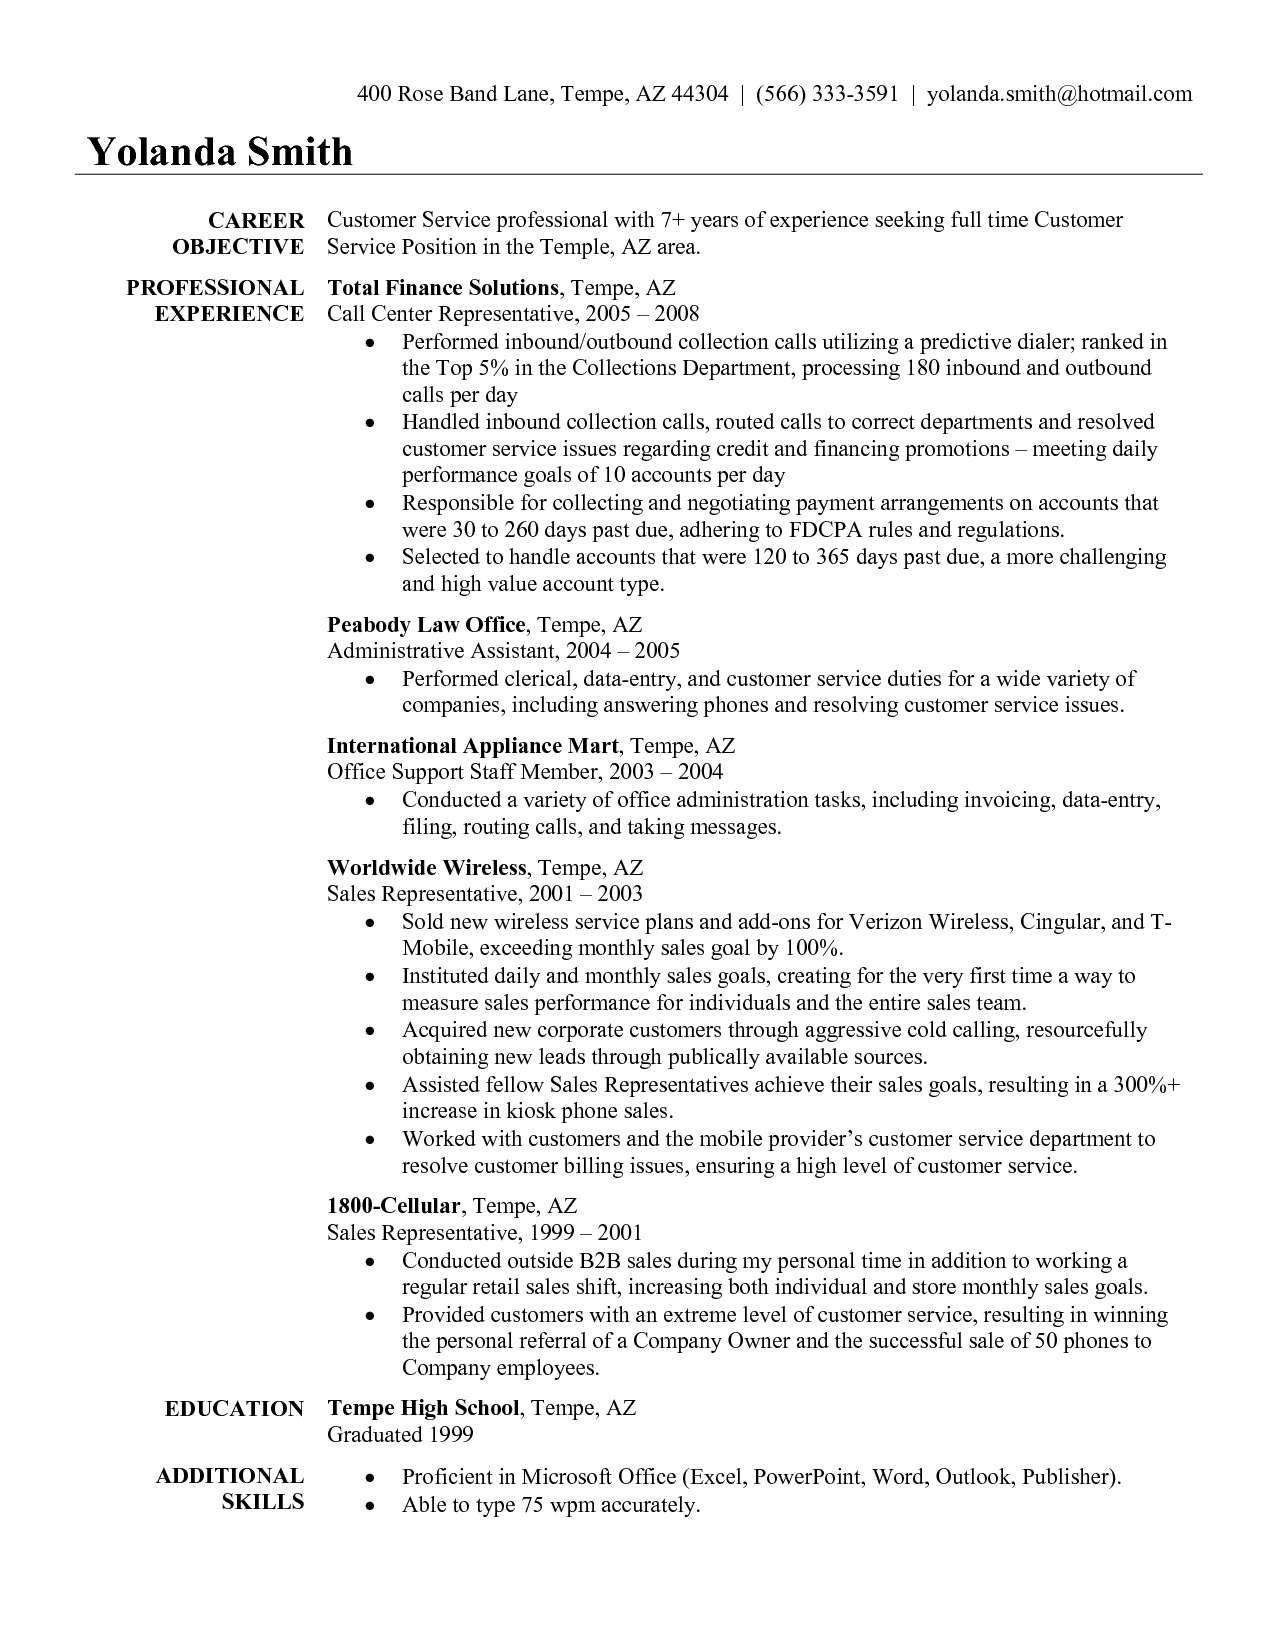 Customer Service Manager Resume Objective Traffic Customer Resume Examples Customer Service Resume